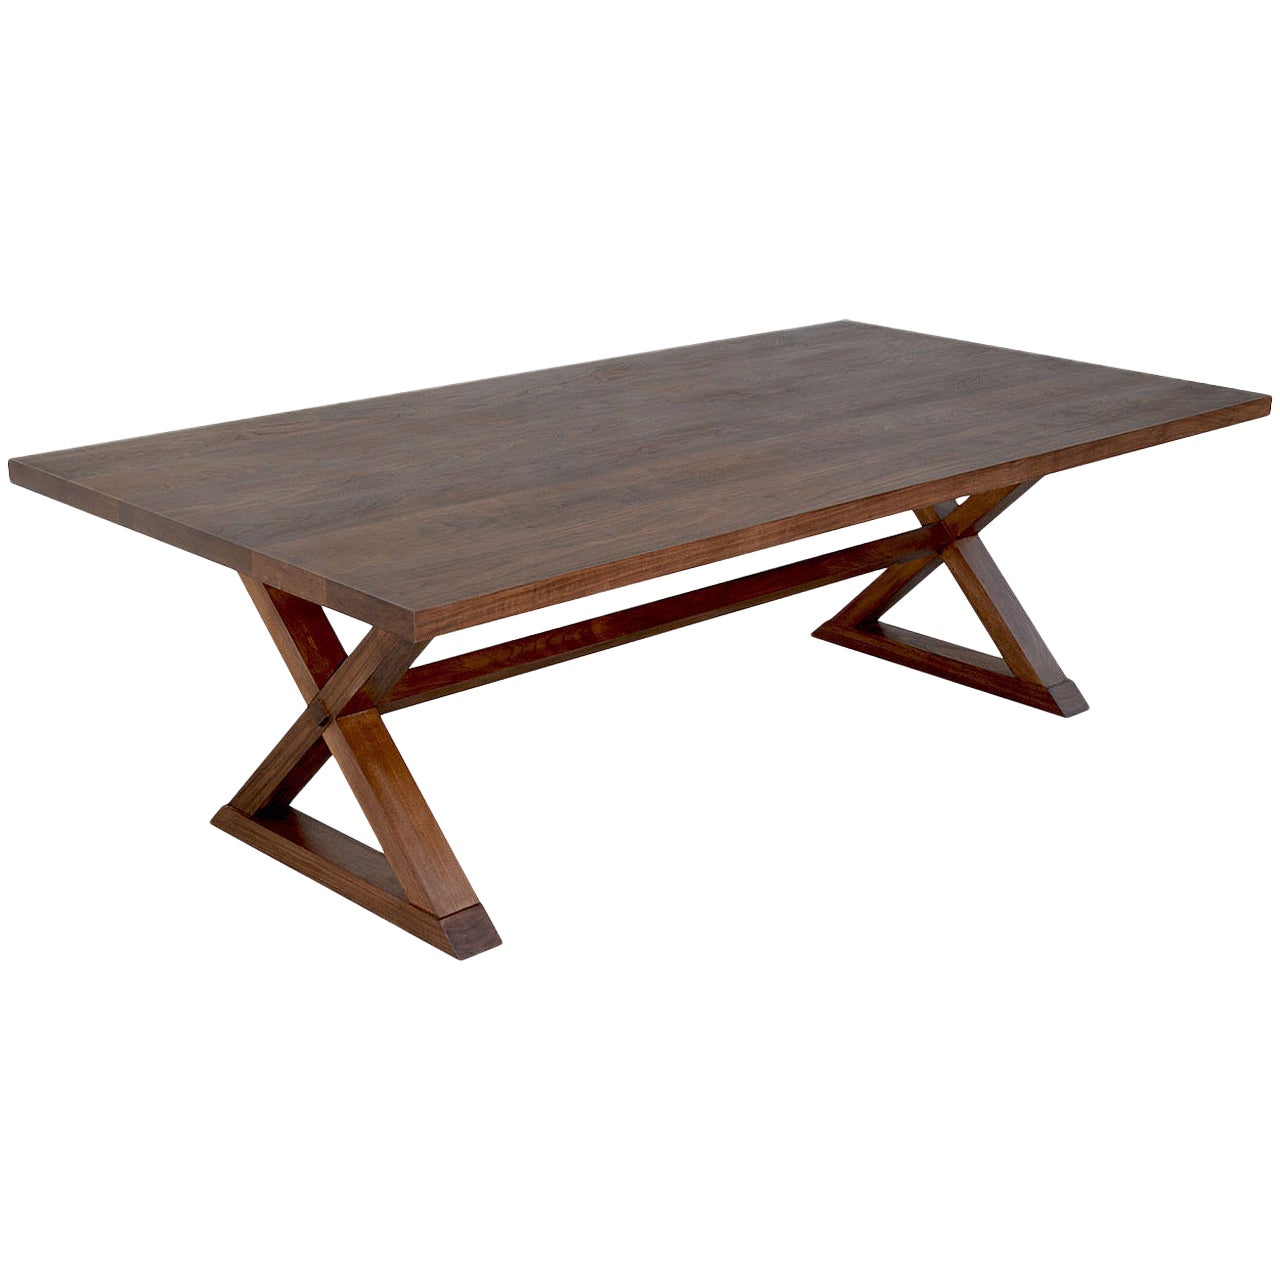 Minimalist X-Trestle Table in Black Walnut, Built to Order by Petersen Antiques